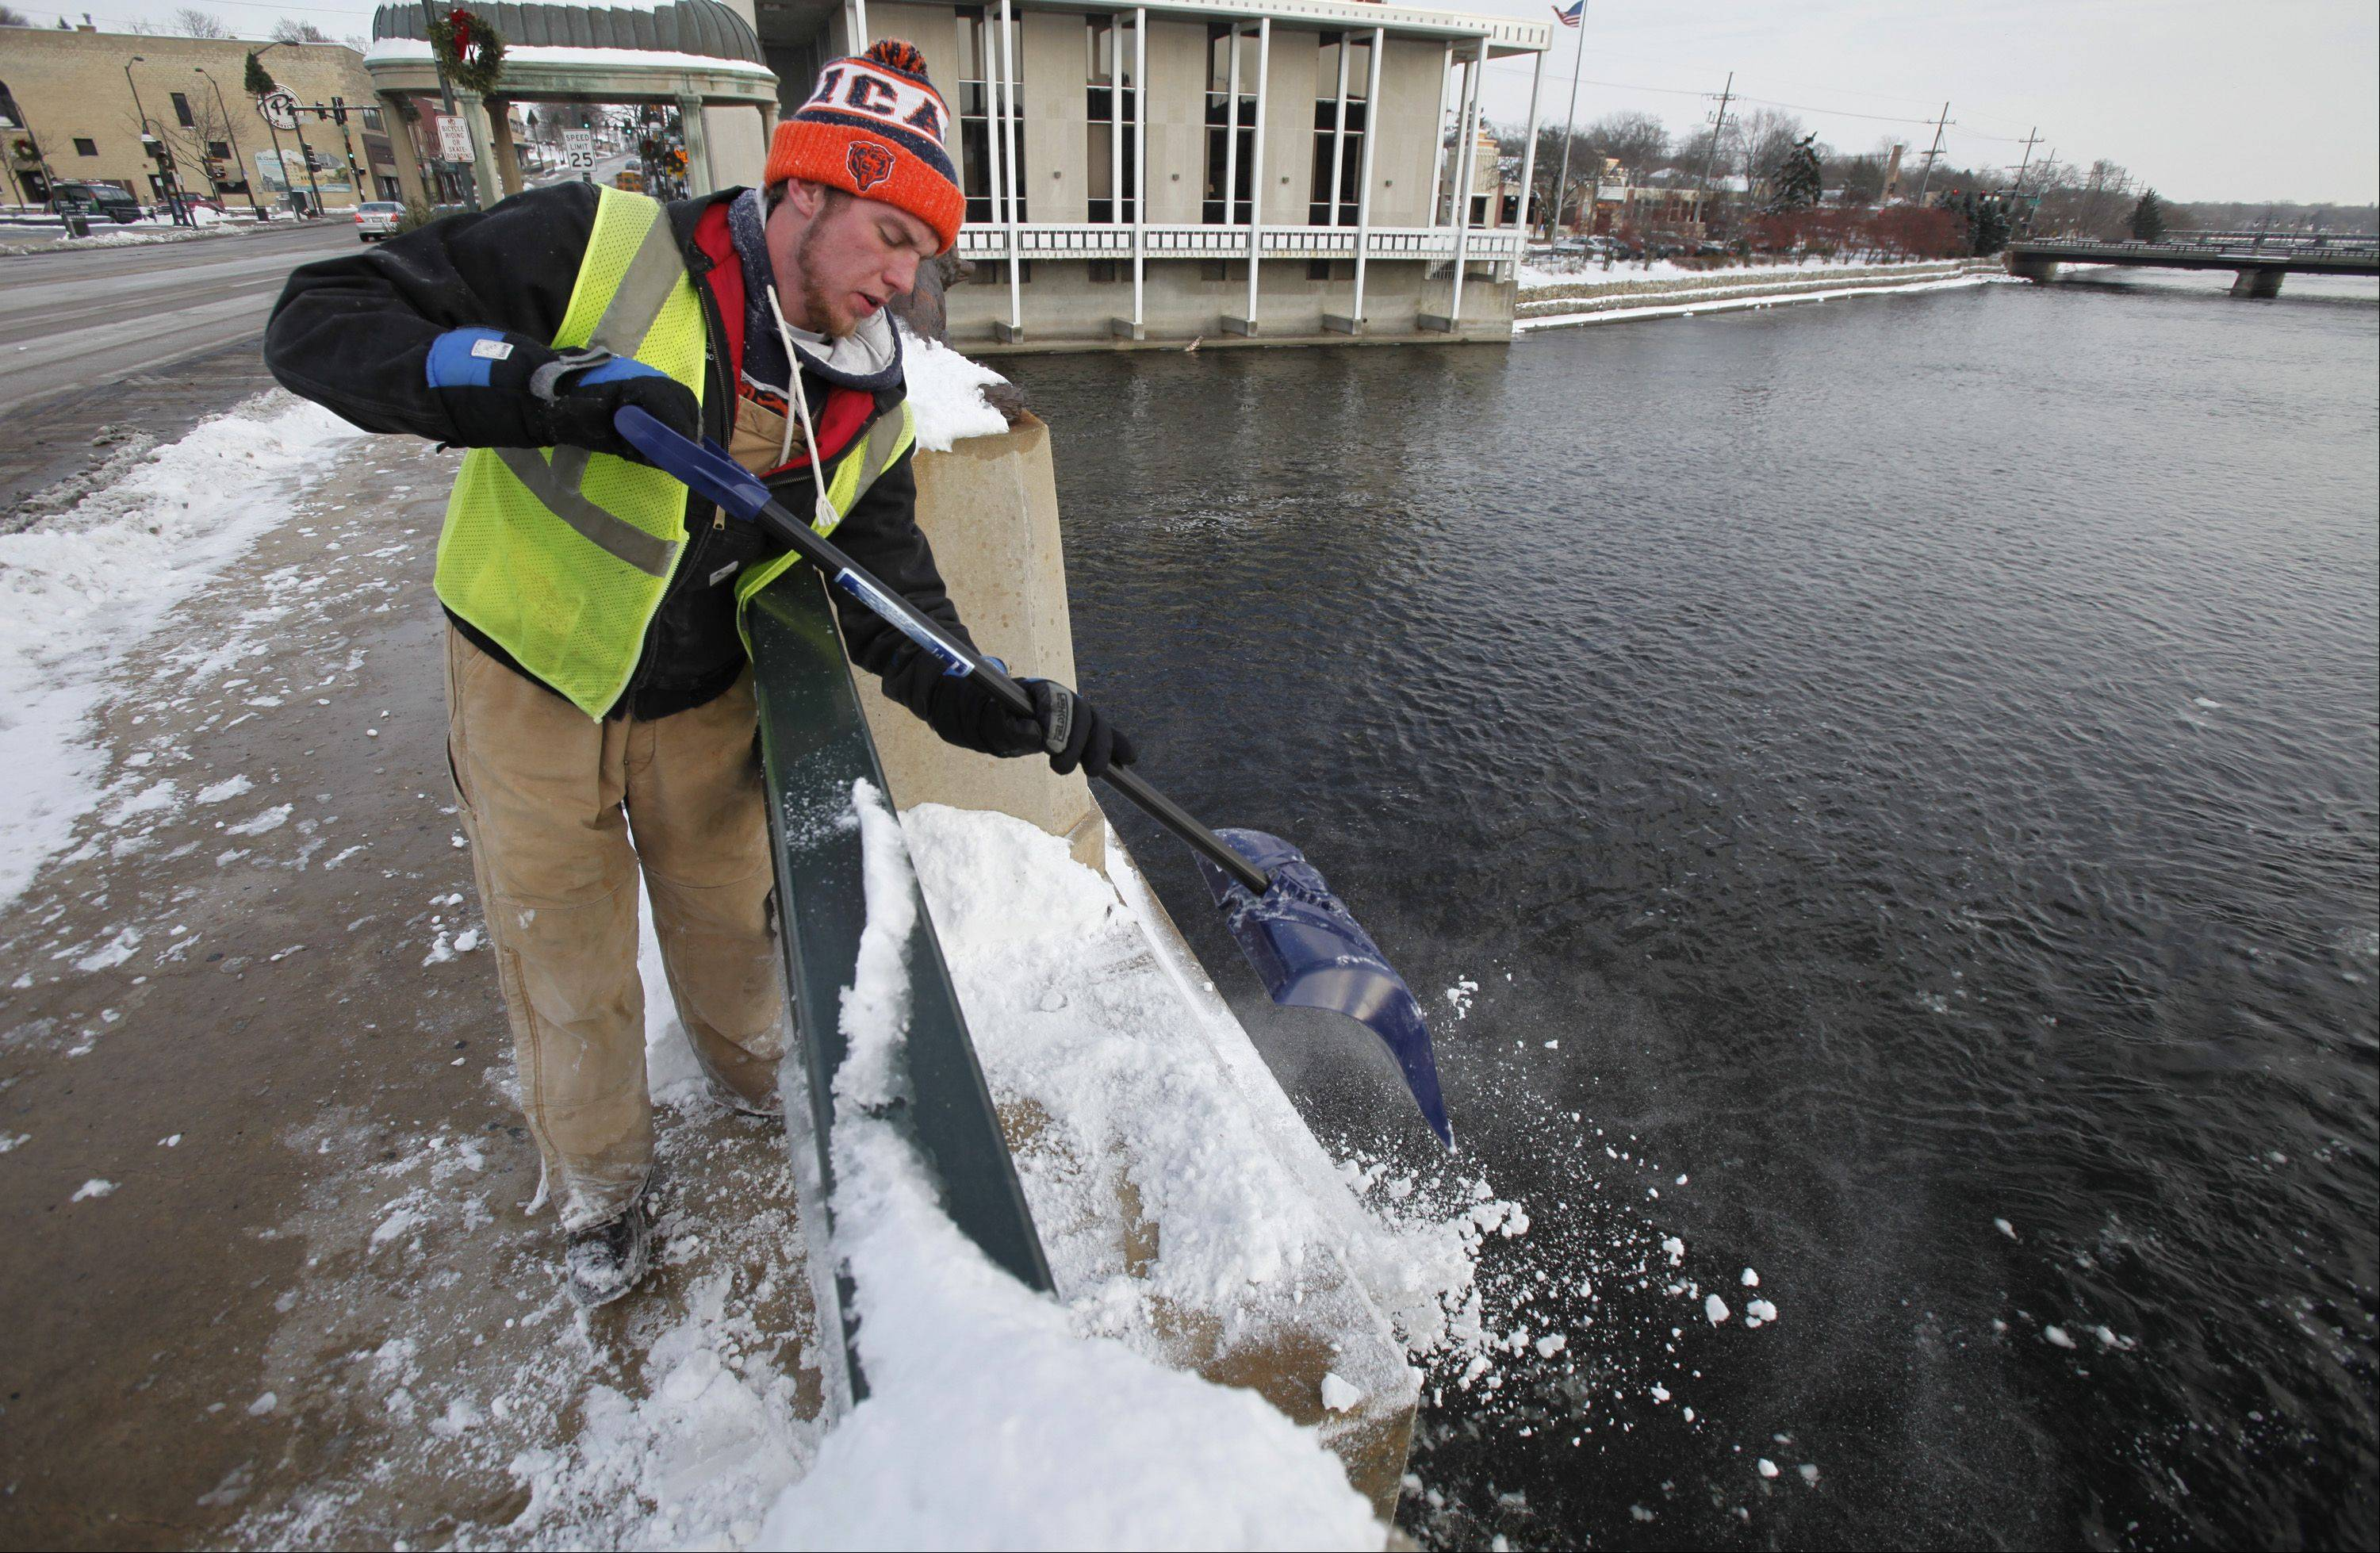 Brian Kus, of Batavia, helps clear snow from the Main Street bridge in downtown St. Charles Monday. Kus said he had been out working since 7:30 a.m. and definitely felt the temperature dropping throughout the day. Kus was working to fulfill service hours for the community restitution program.